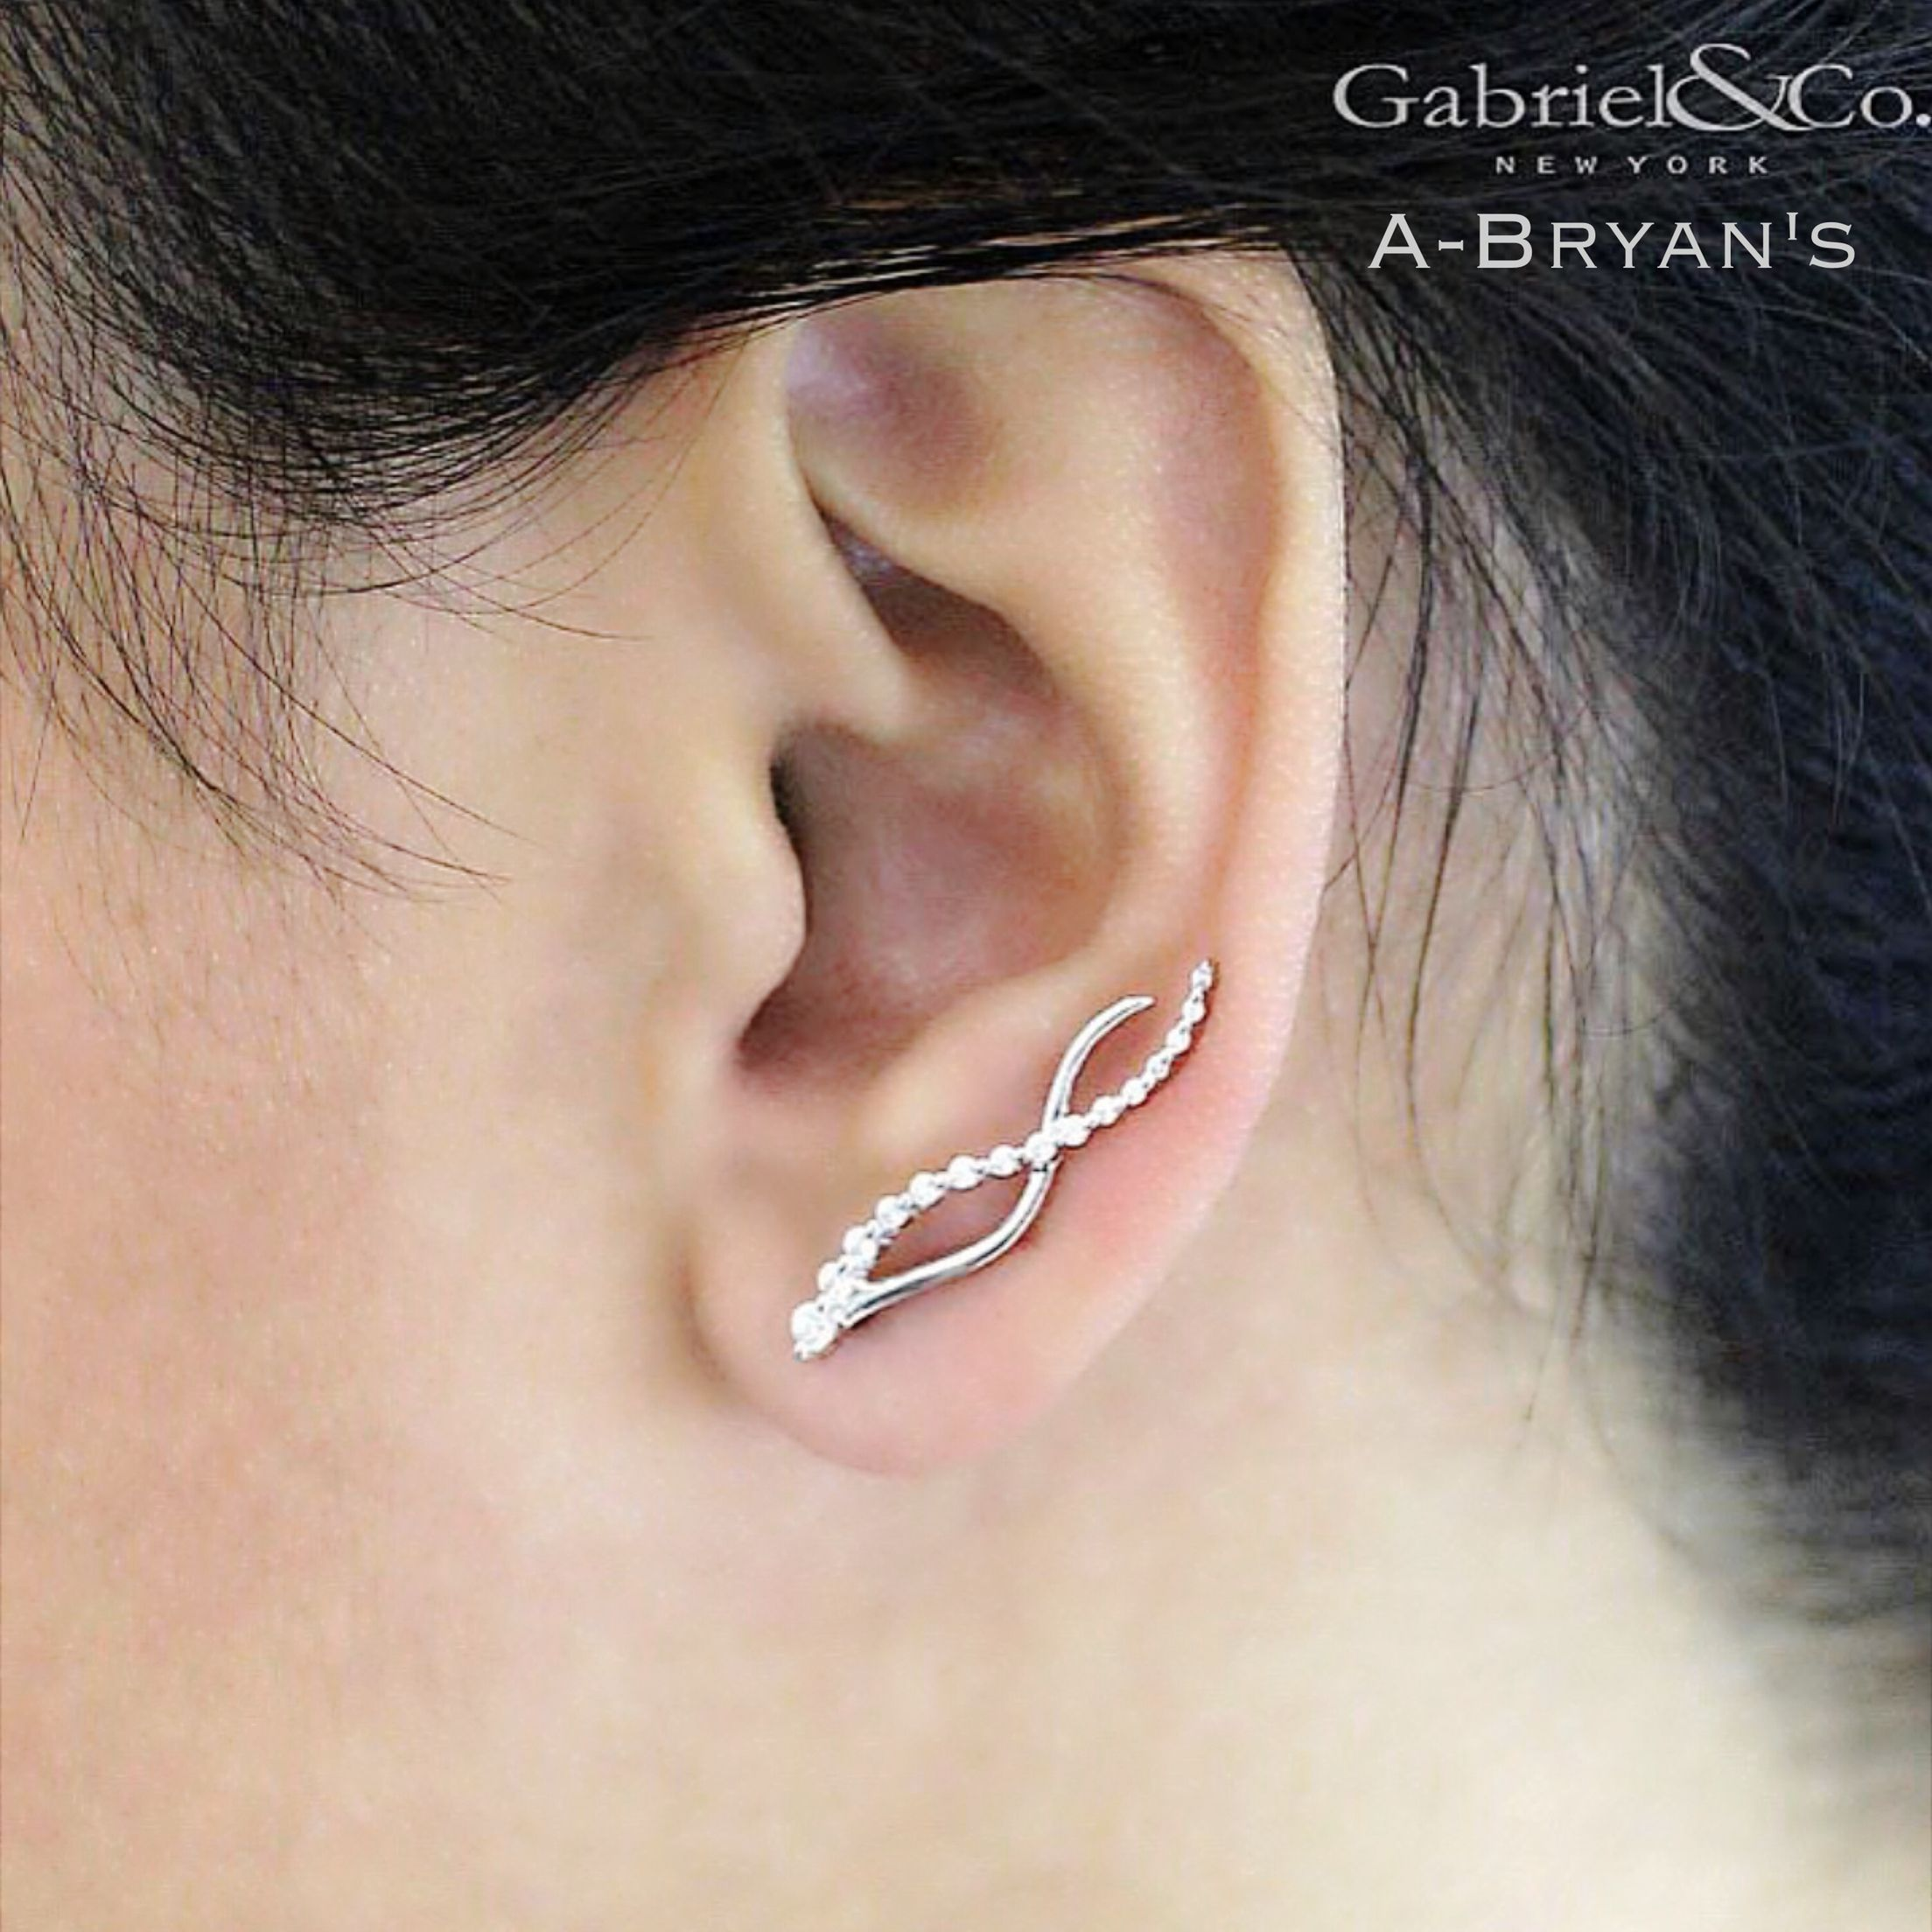 infection double ear types earrings price healing lobe second piercing jewelry care